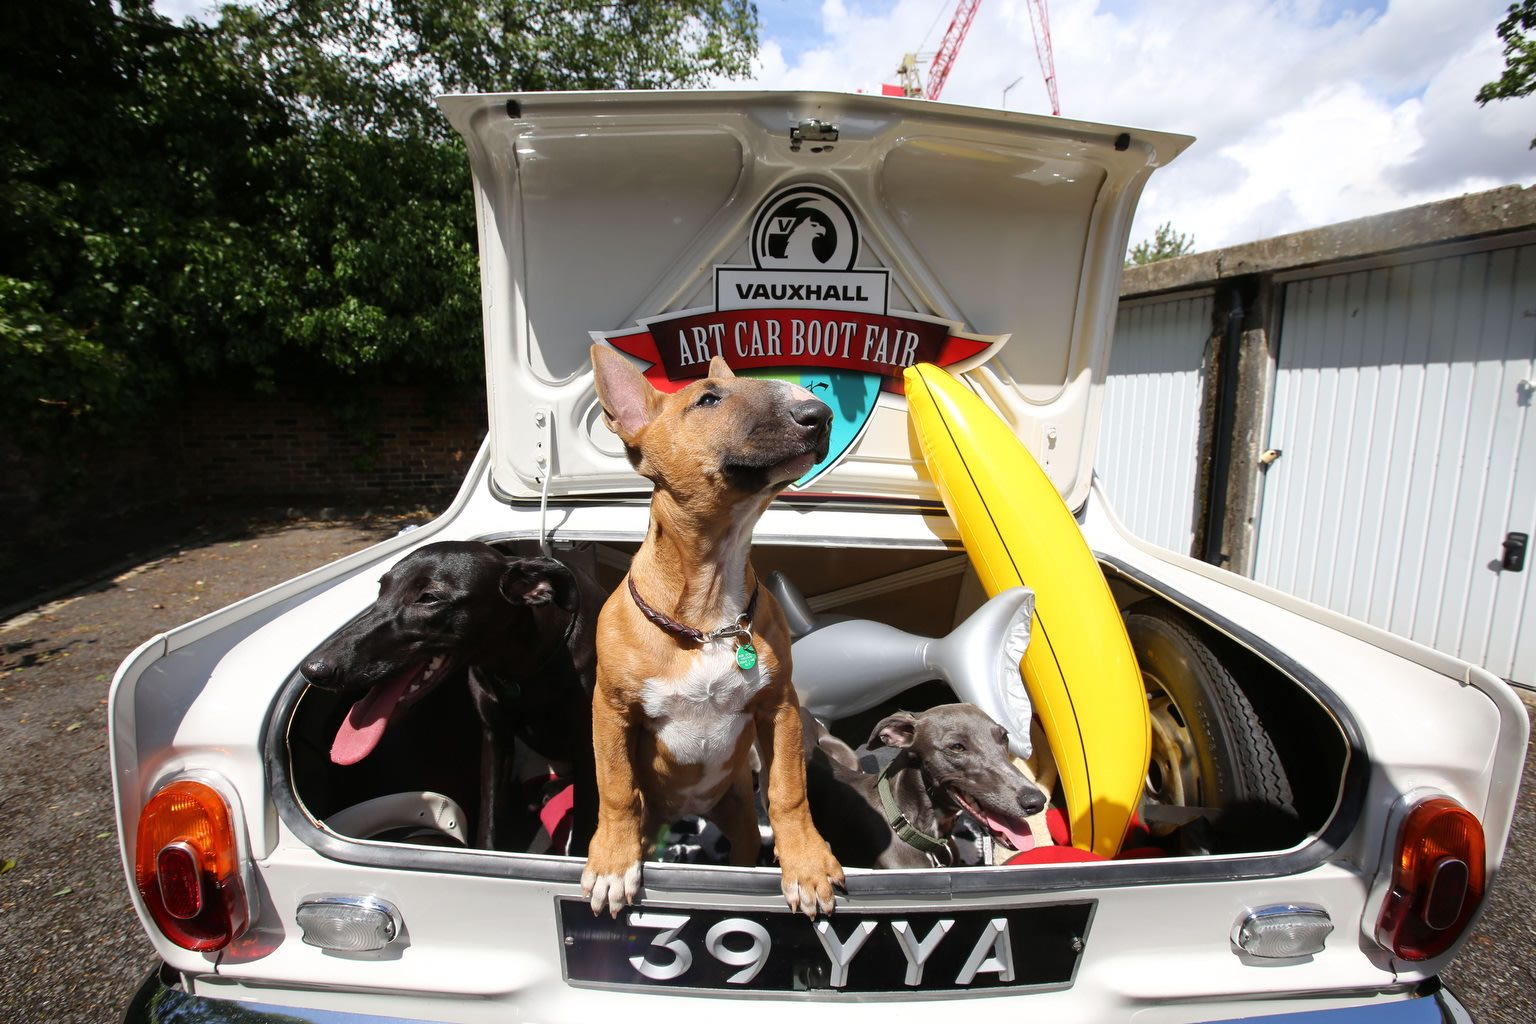 image of dogs in a car boot